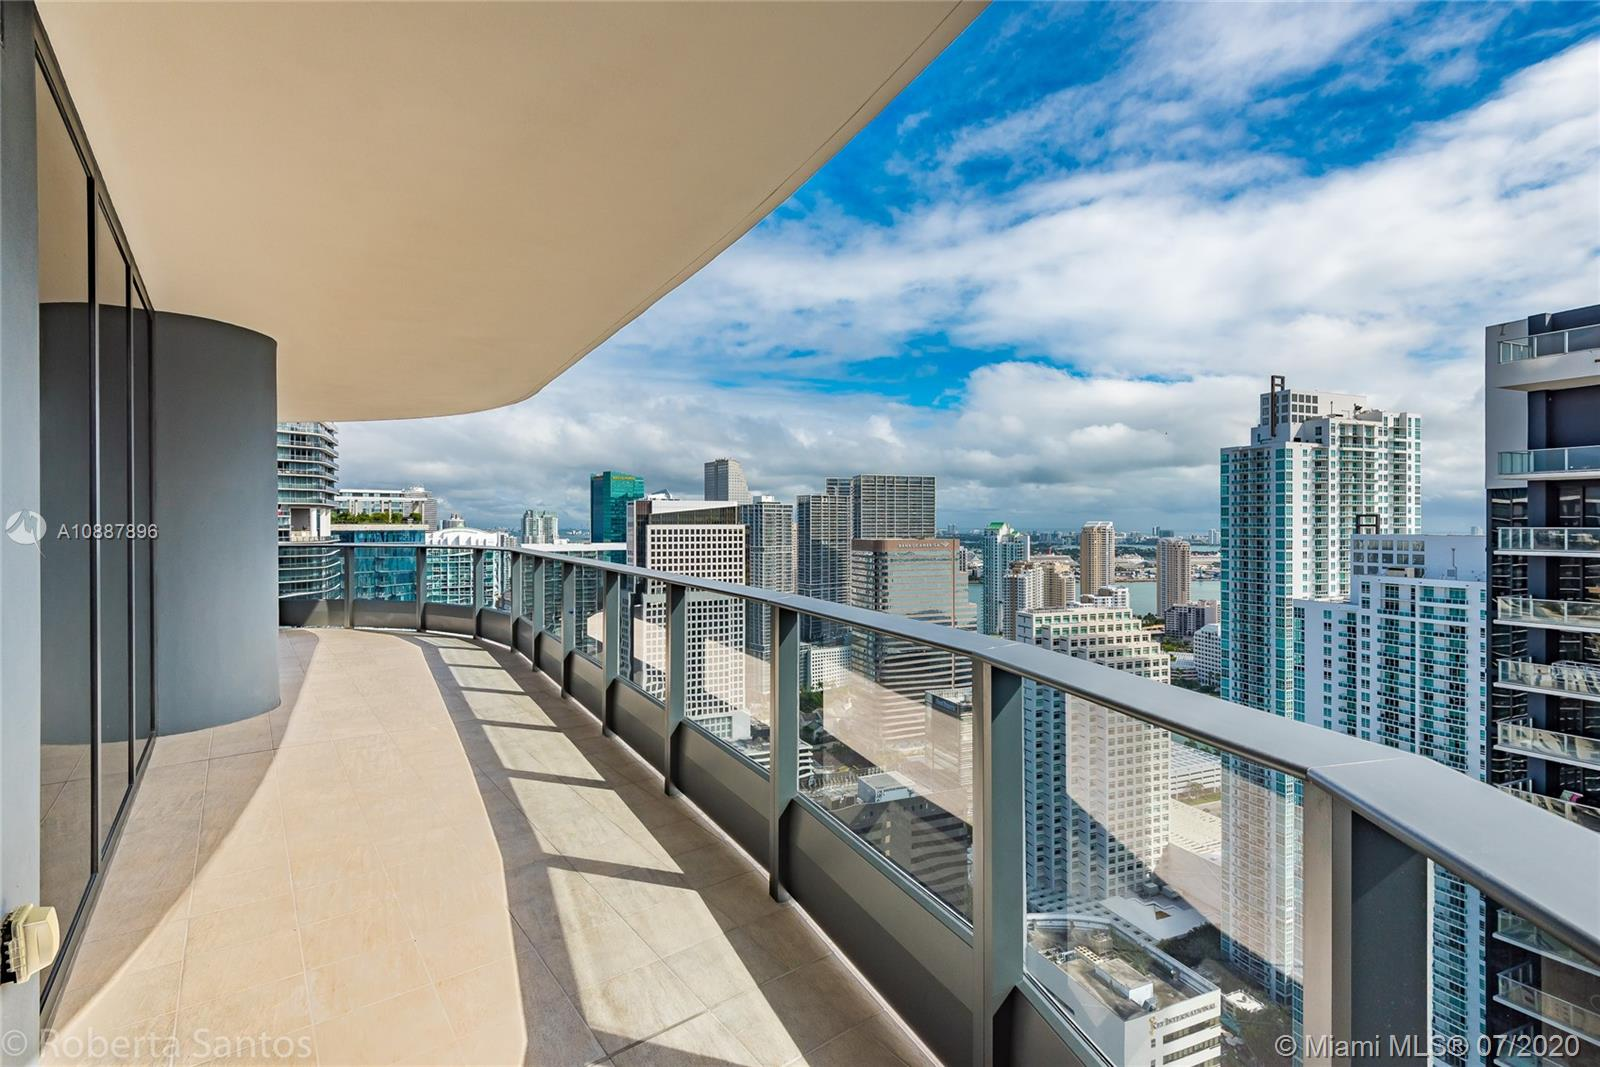 Beautiful 2/2.5 plus den condo with upgraded kitchen and floors just like the PH units, motorized blinds and Italian made walk-in closets. Own a this unit Miami's tallest residential condo building south of New York. This highly anticipated luxury building by Italian developer Ugo Colombo is outfitted with Miele appliances, includes two pools, club house, spa and more!